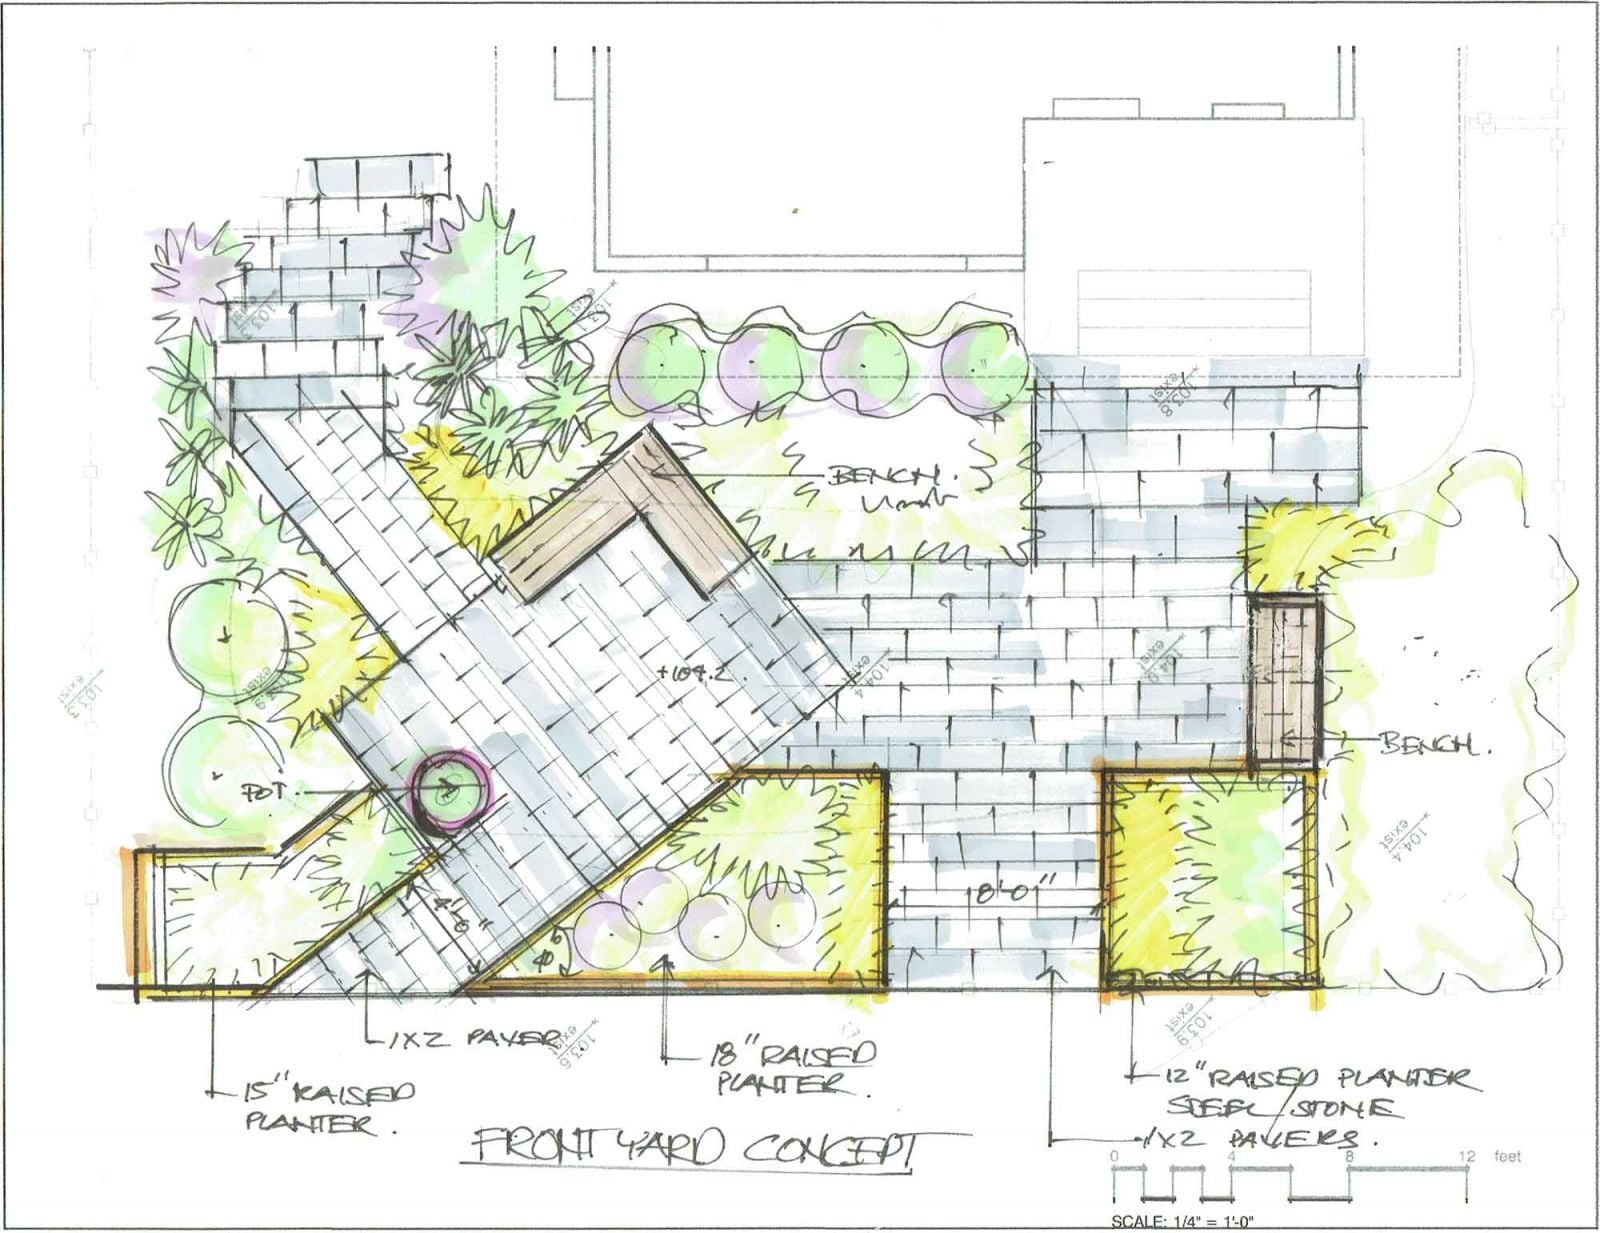 Landscape architecture greener living solutions for Landscape design plans